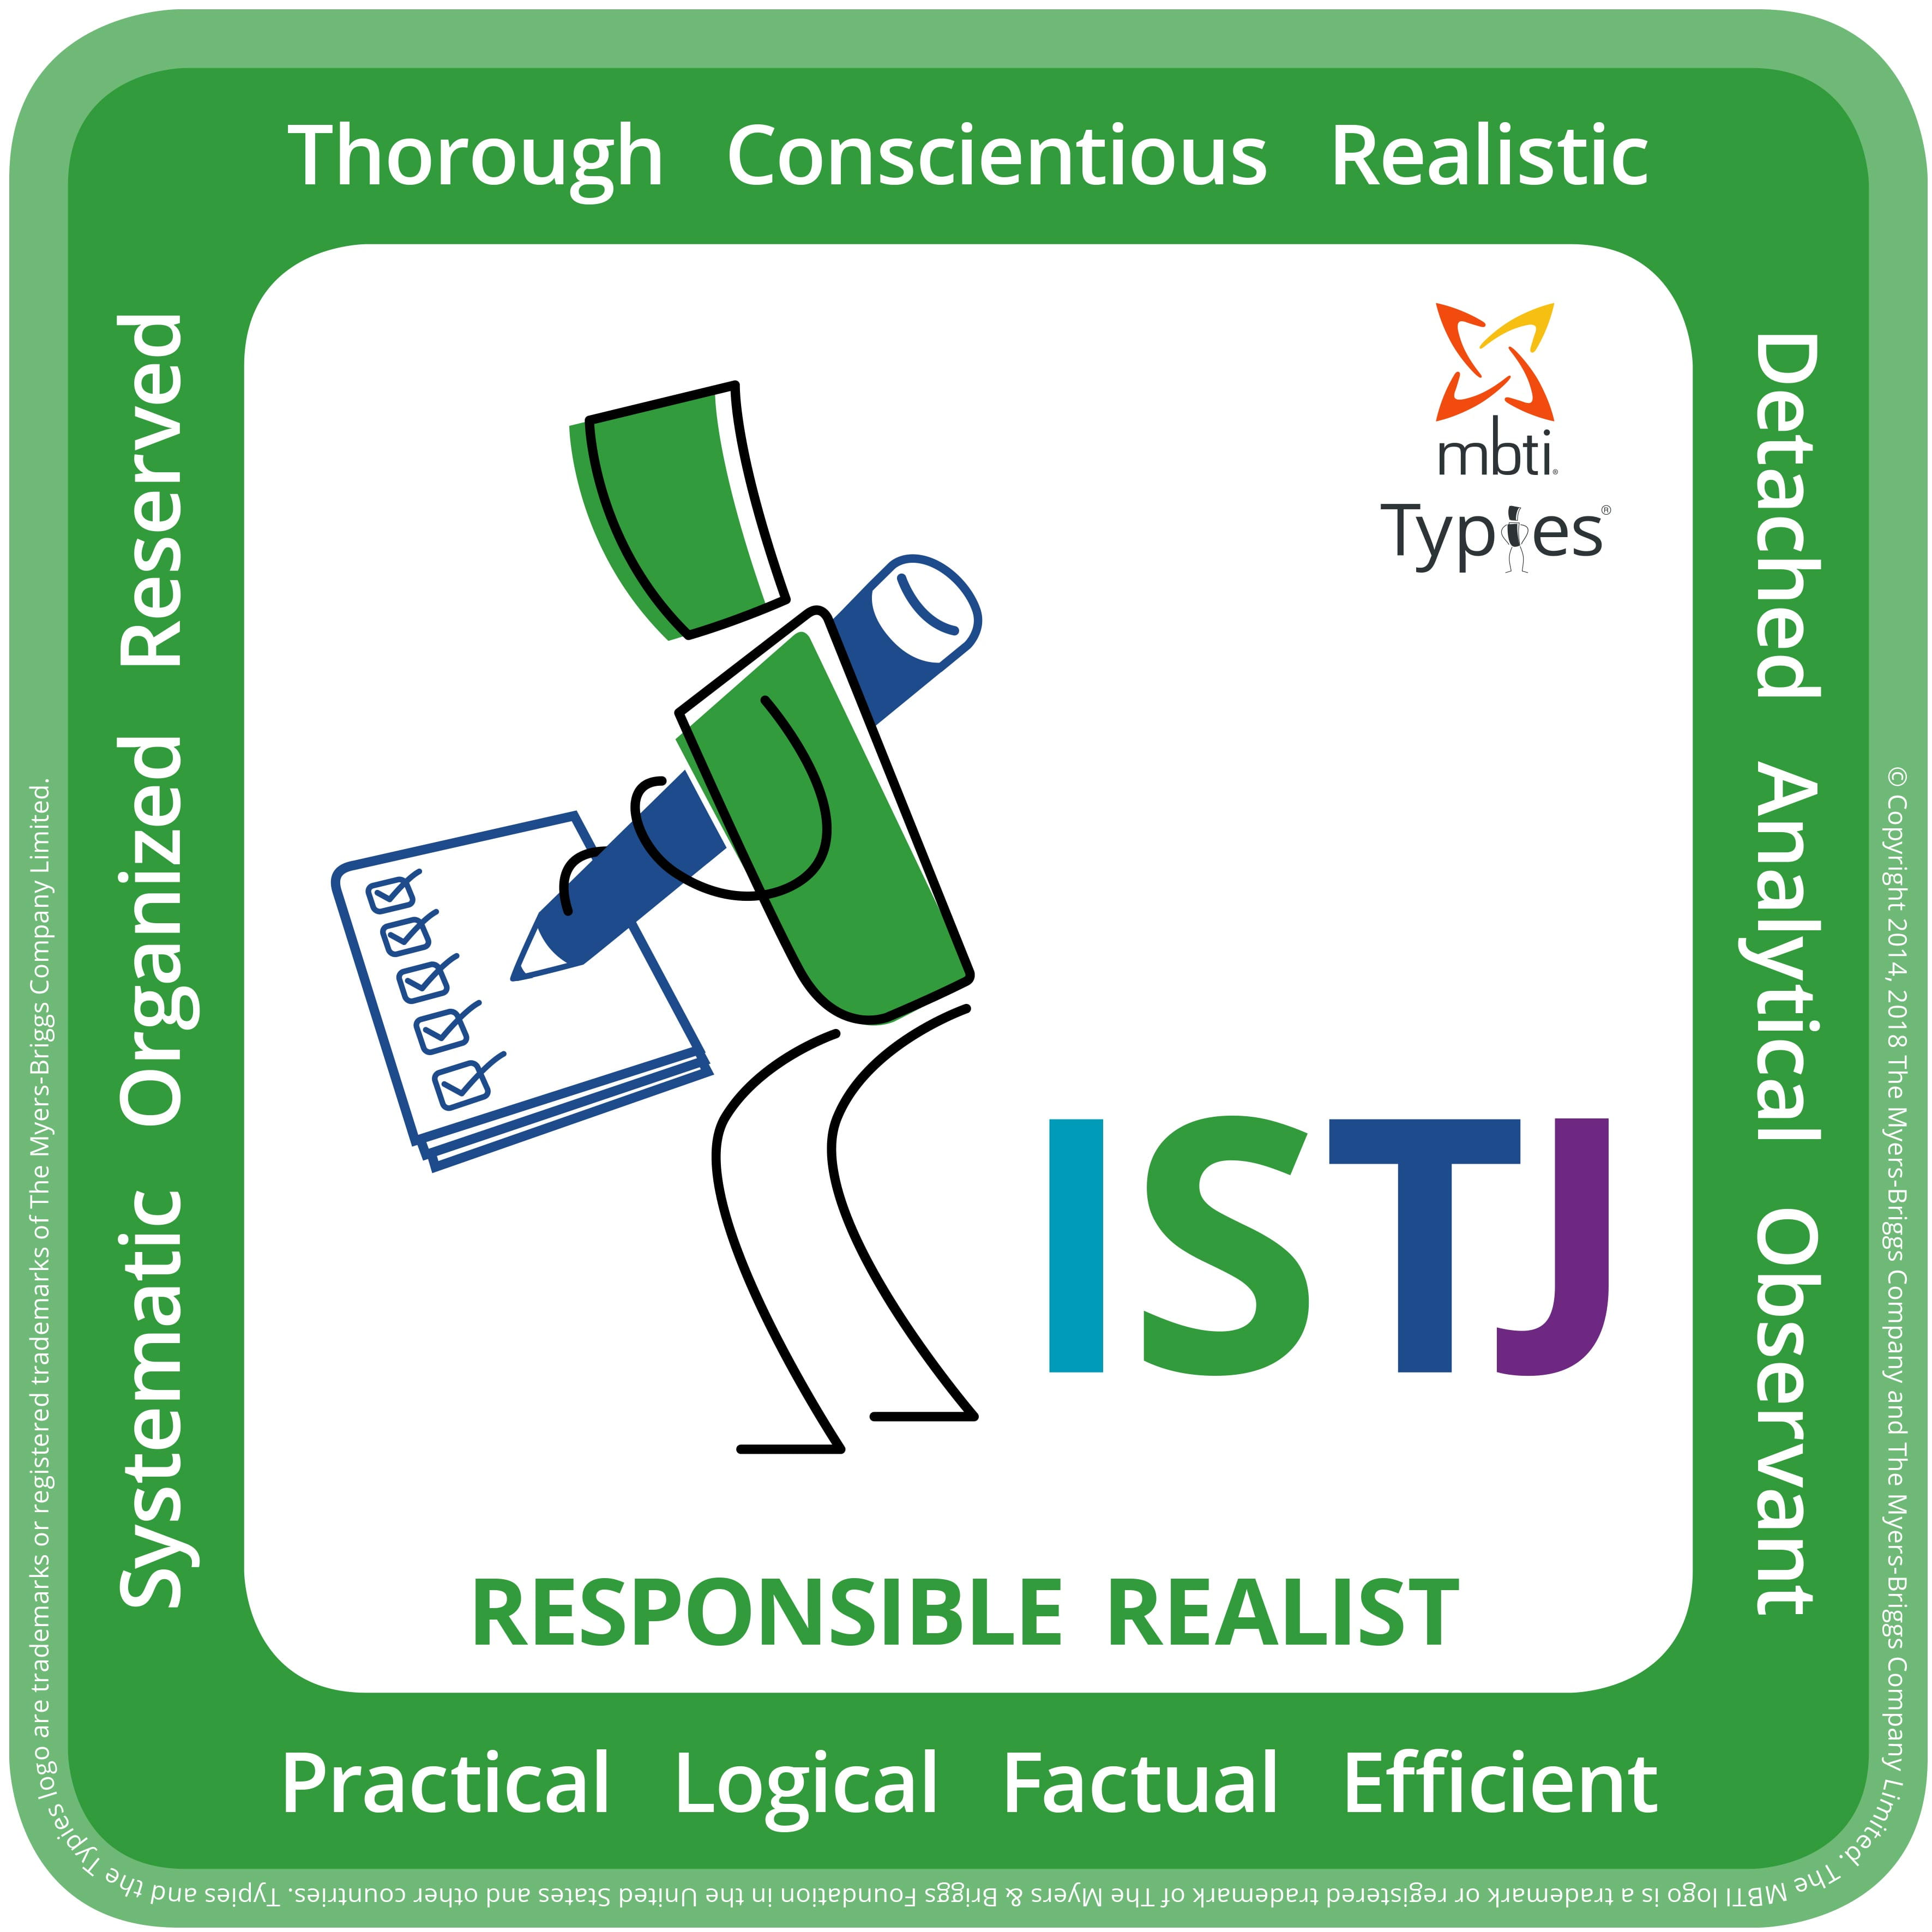 Typical characteristics of an ISTJ